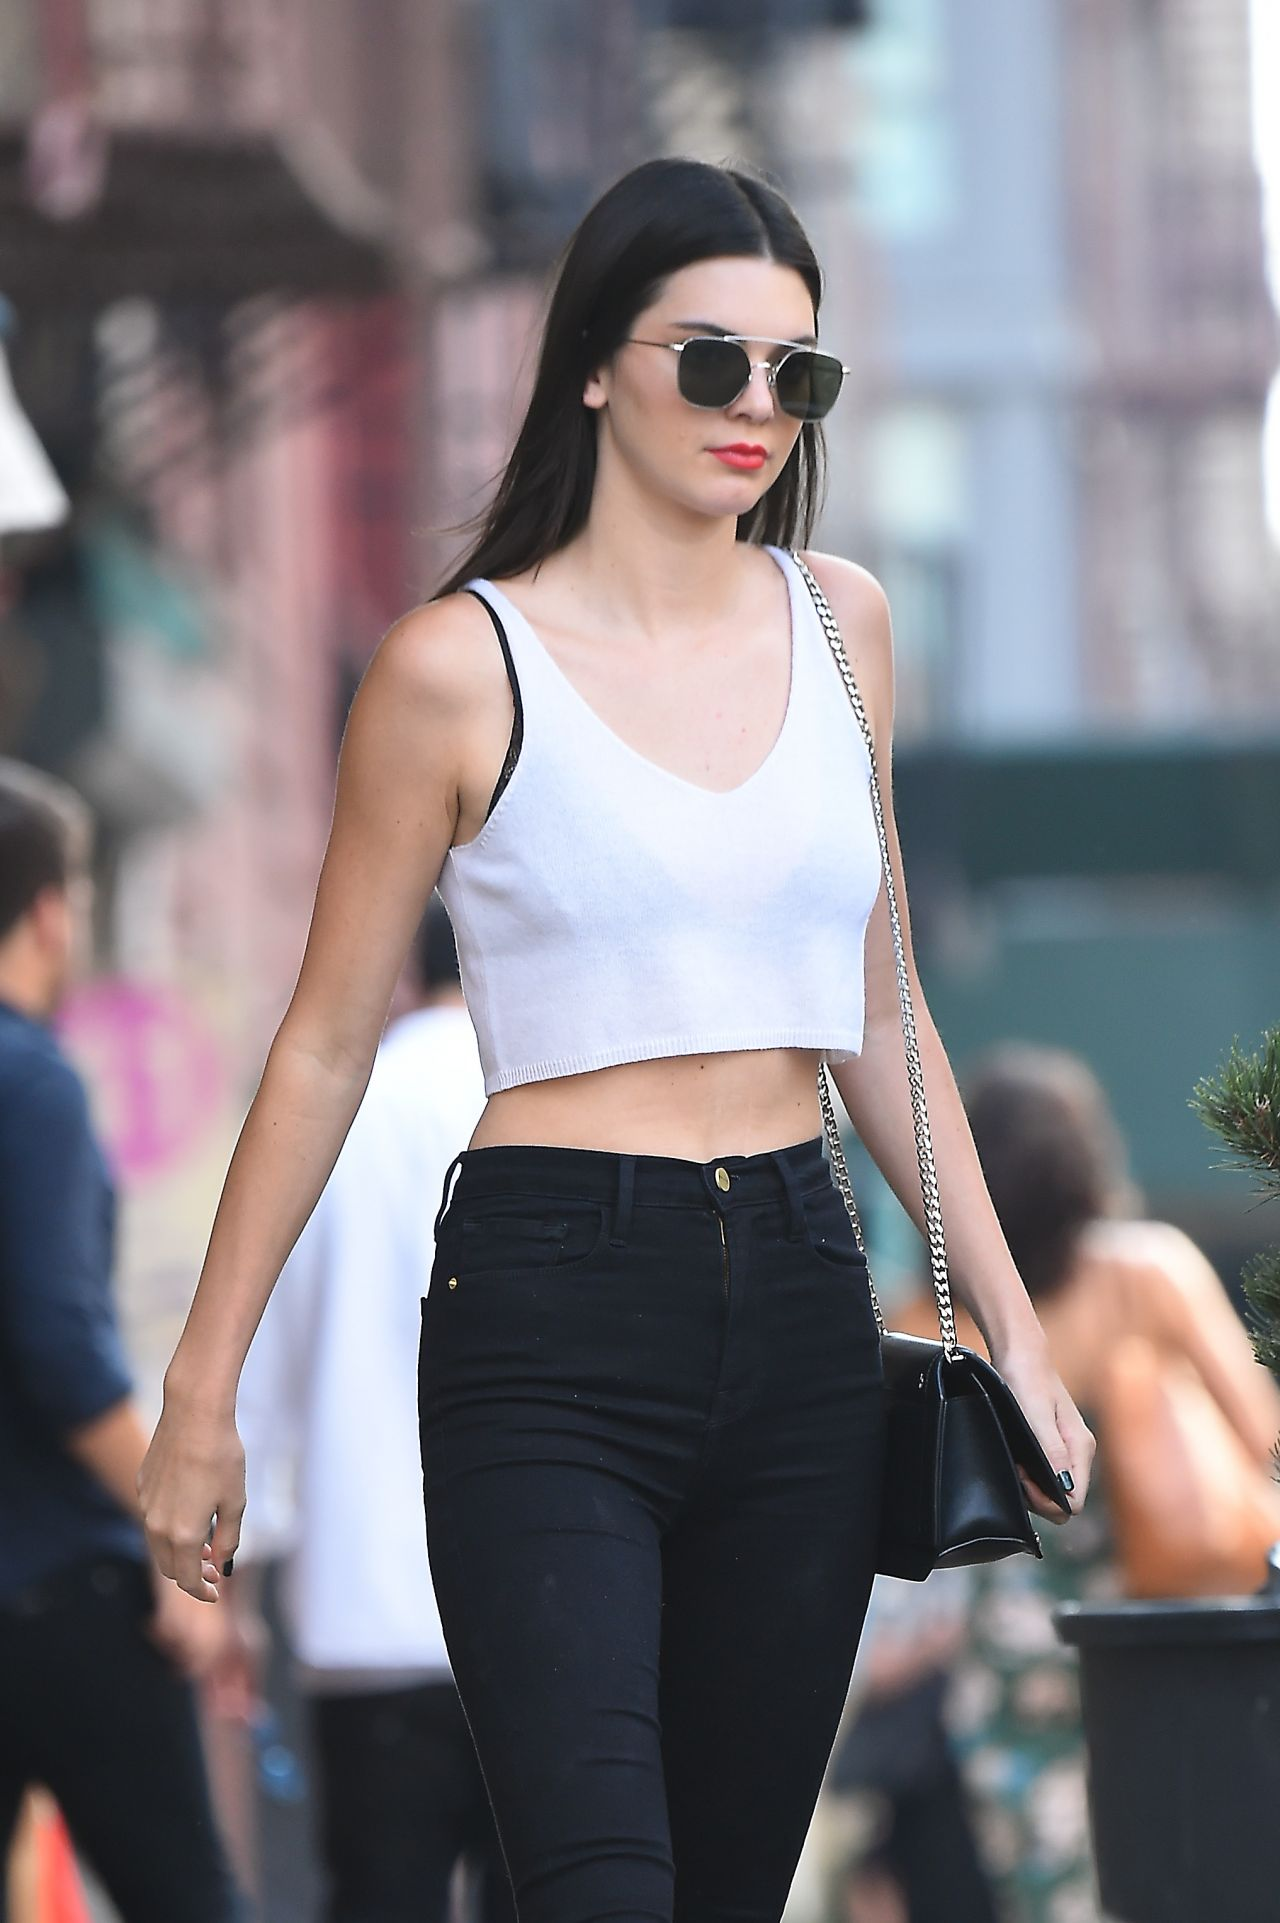 Kendall Jenner Chic Outfit NYC 7222016